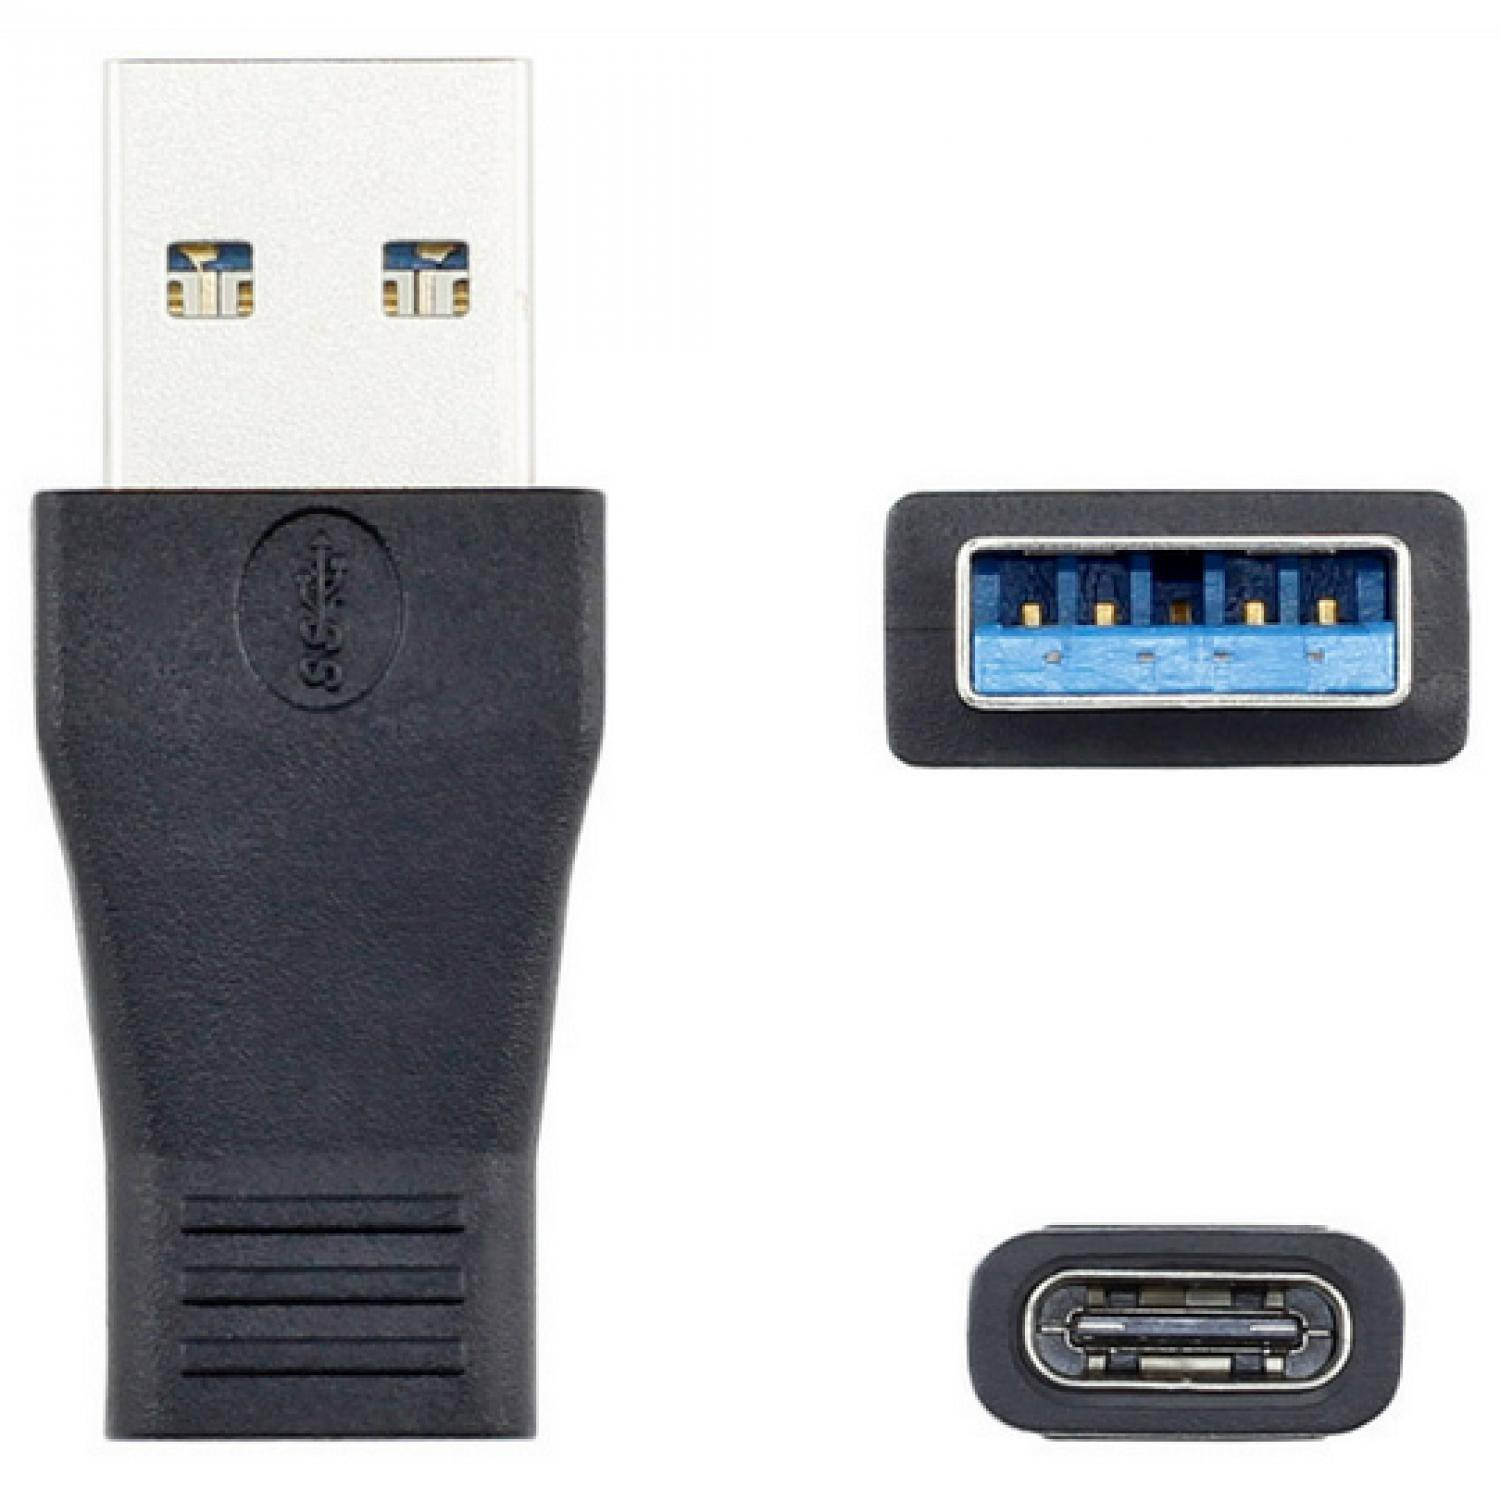 Adapter Konverter USB 3.0 ke USB 3.1 Type C